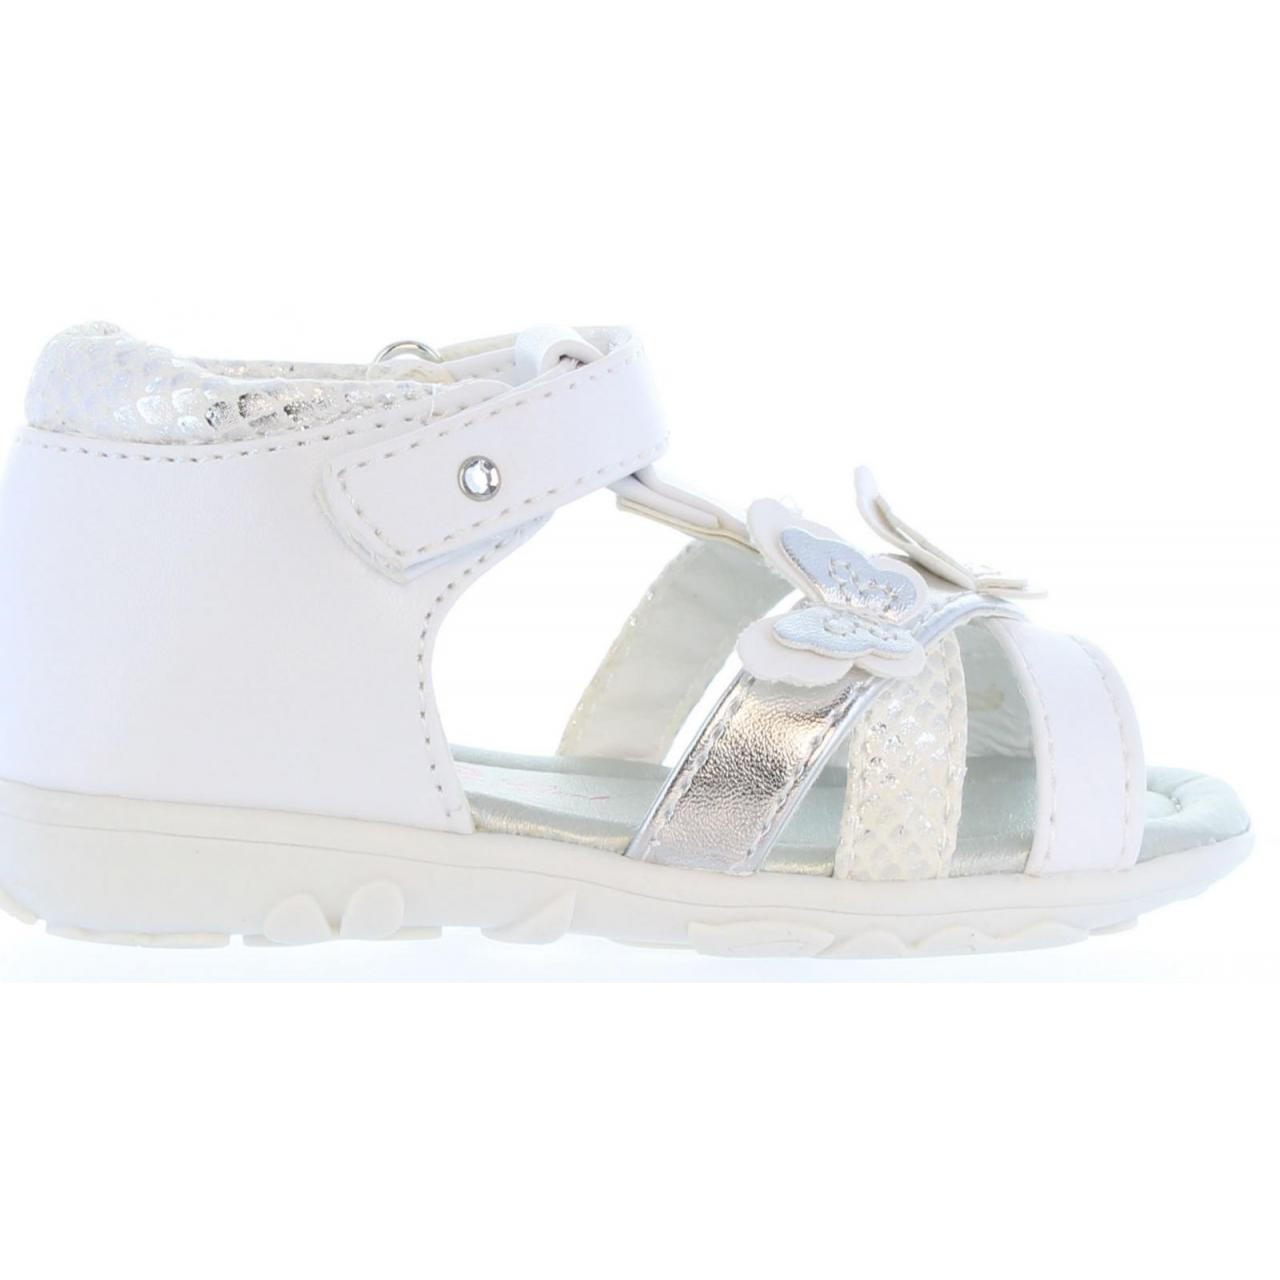 Sandals Girl Flower Girl 299790 B1080 White Silver